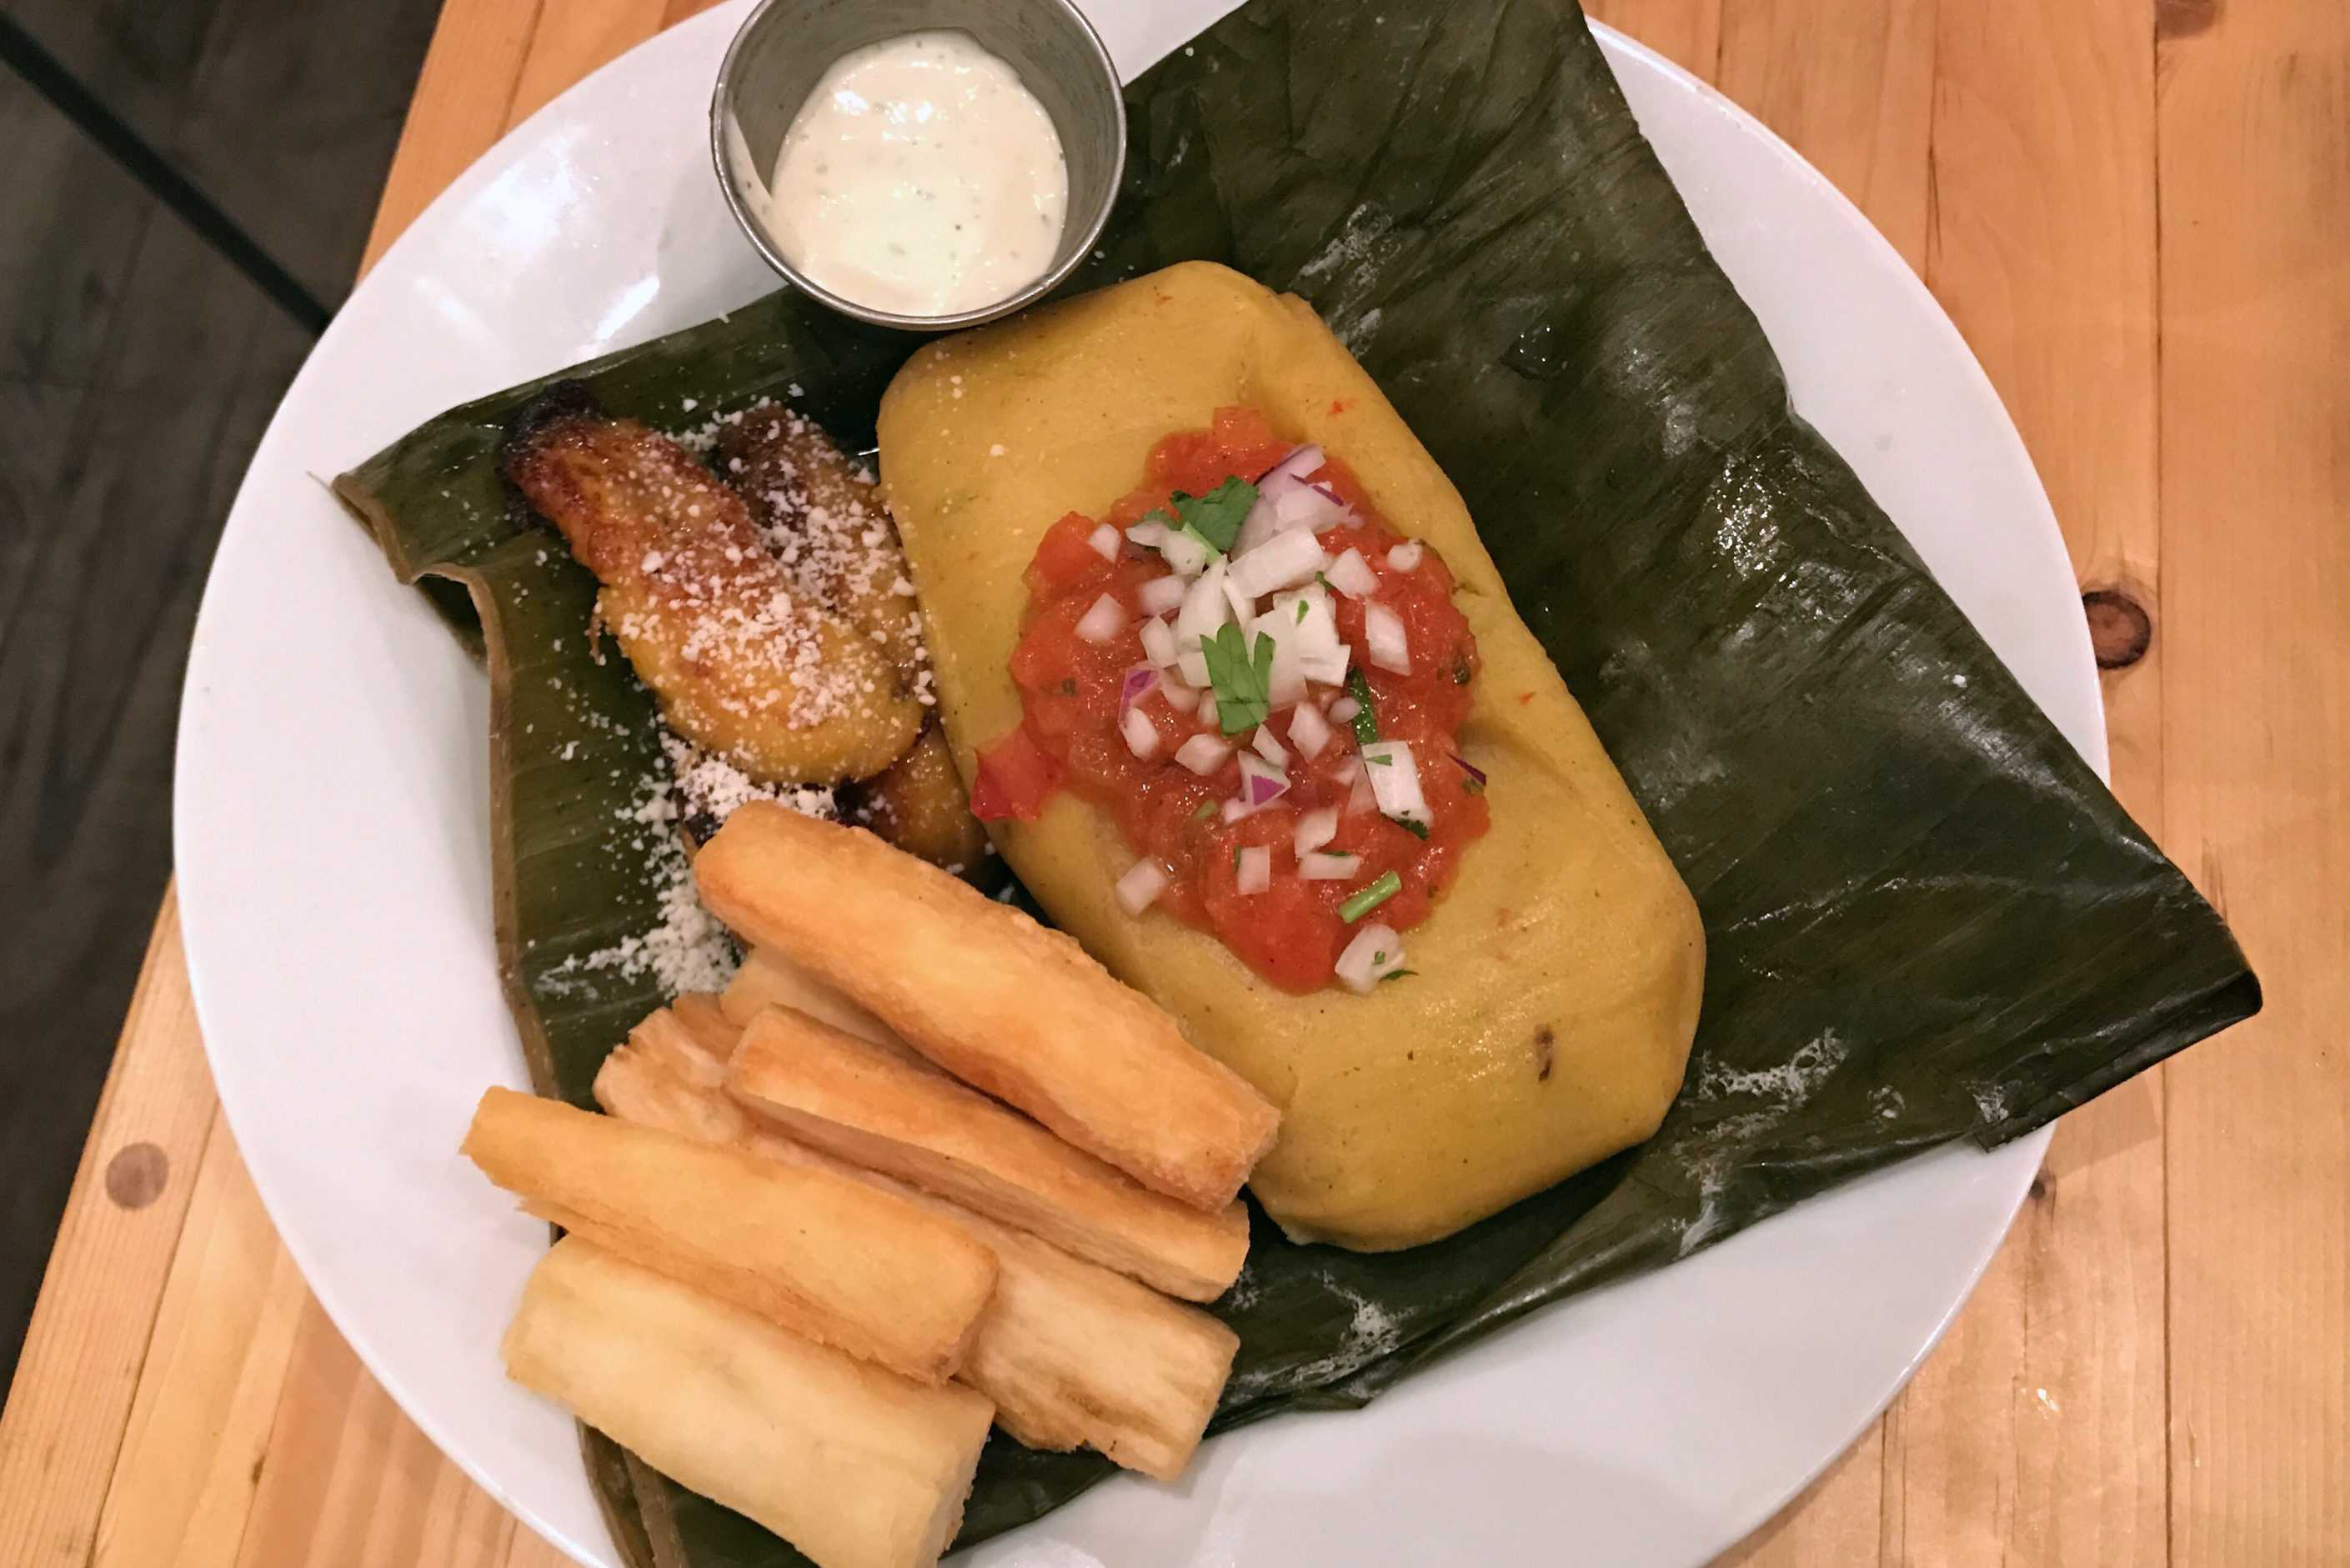 Colombian Tamale, Photo by Julia Eshaghpour '19.